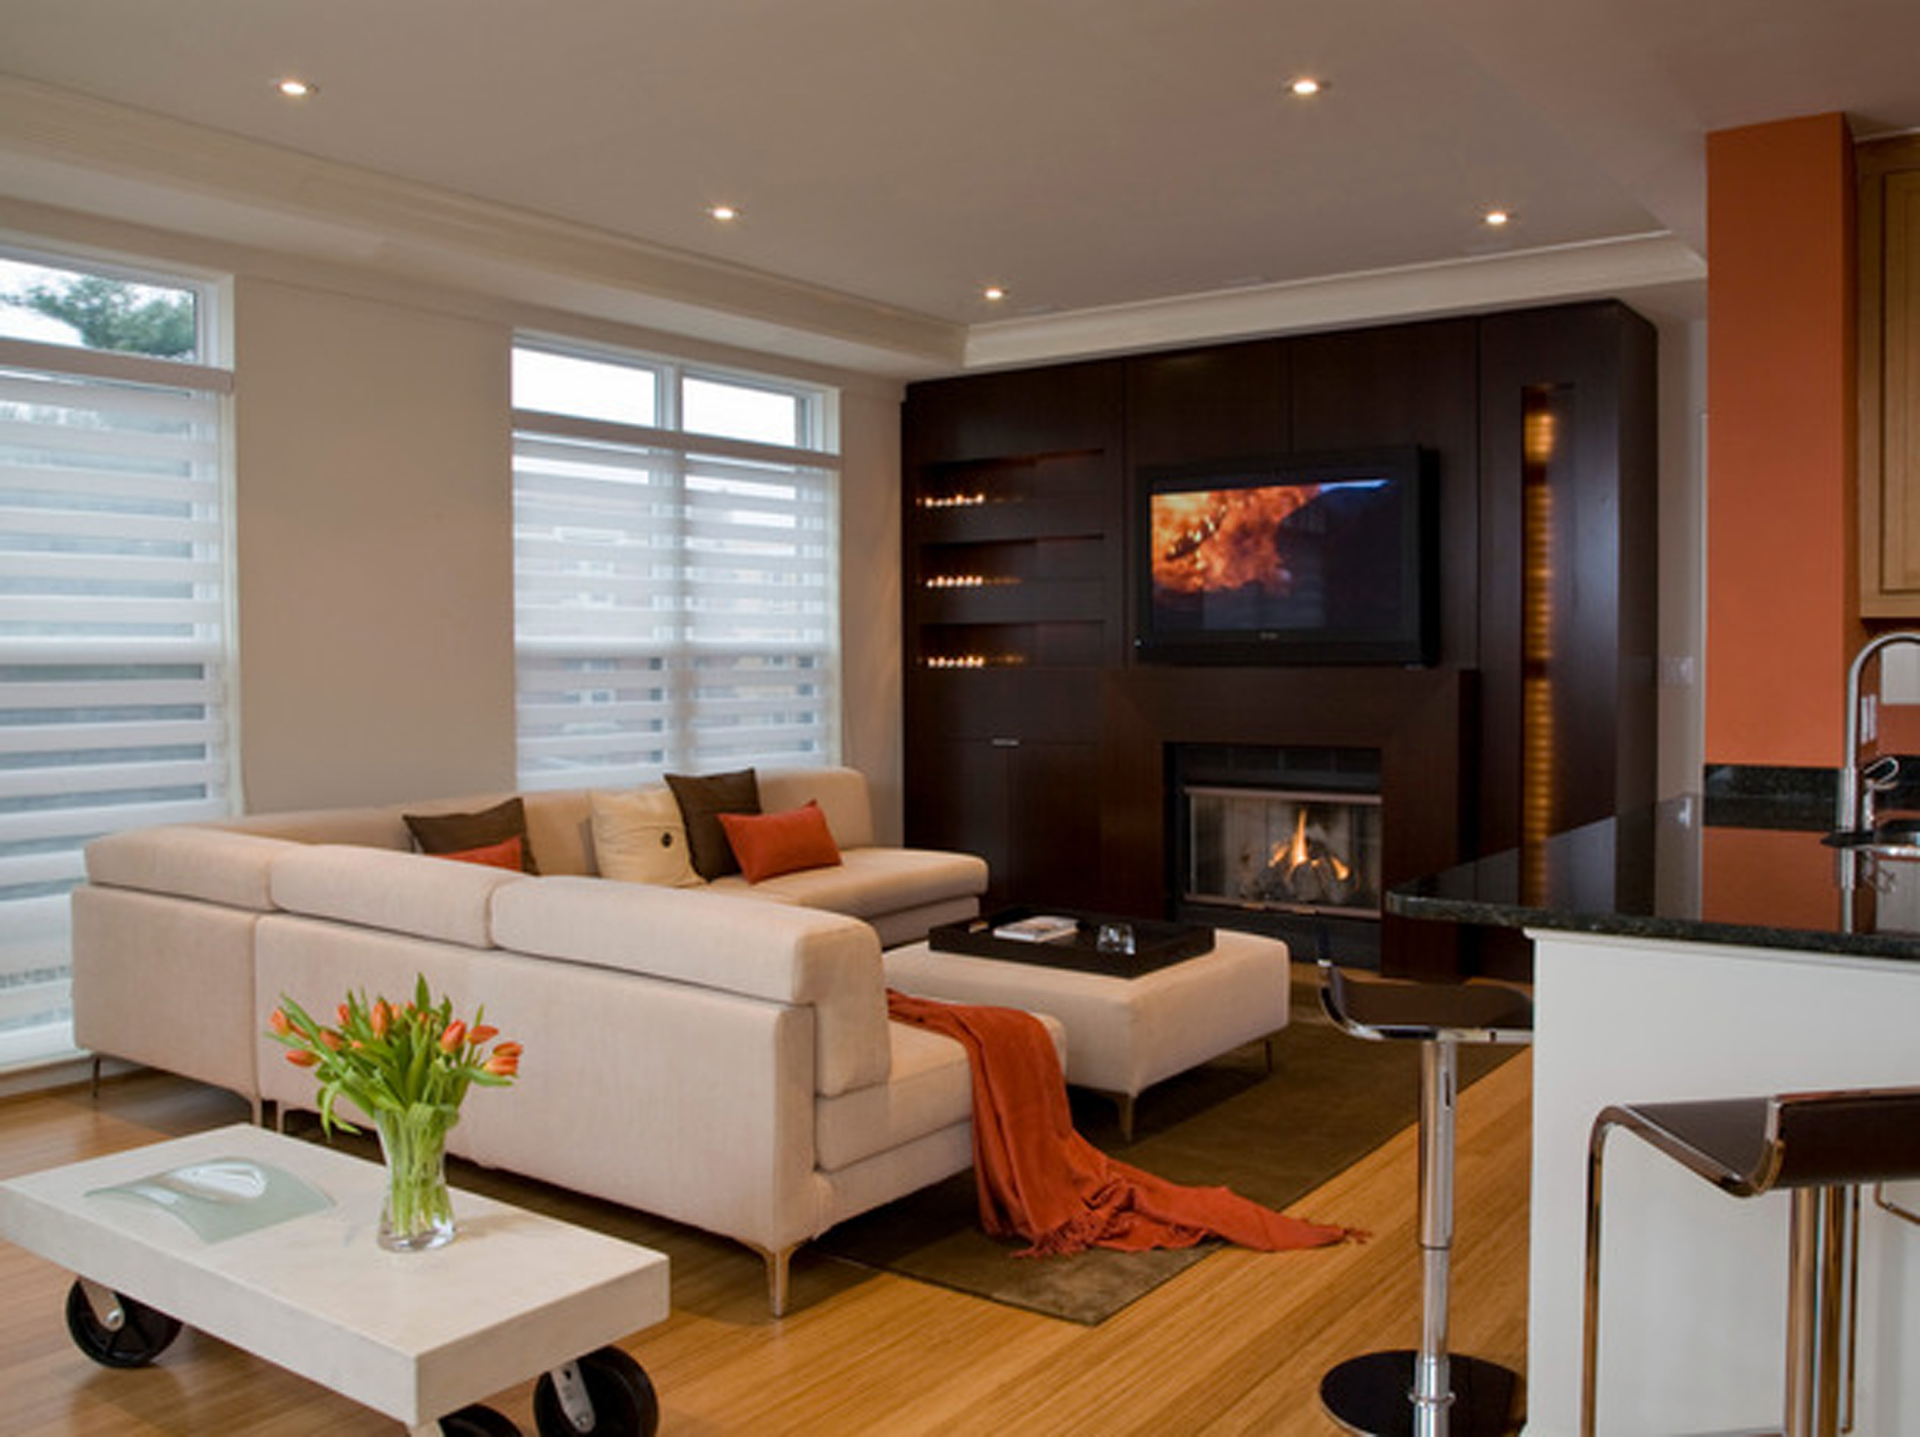 Top Modern Living Room with Fireplace and TV 1920 x 1437 · 865 kB · jpeg